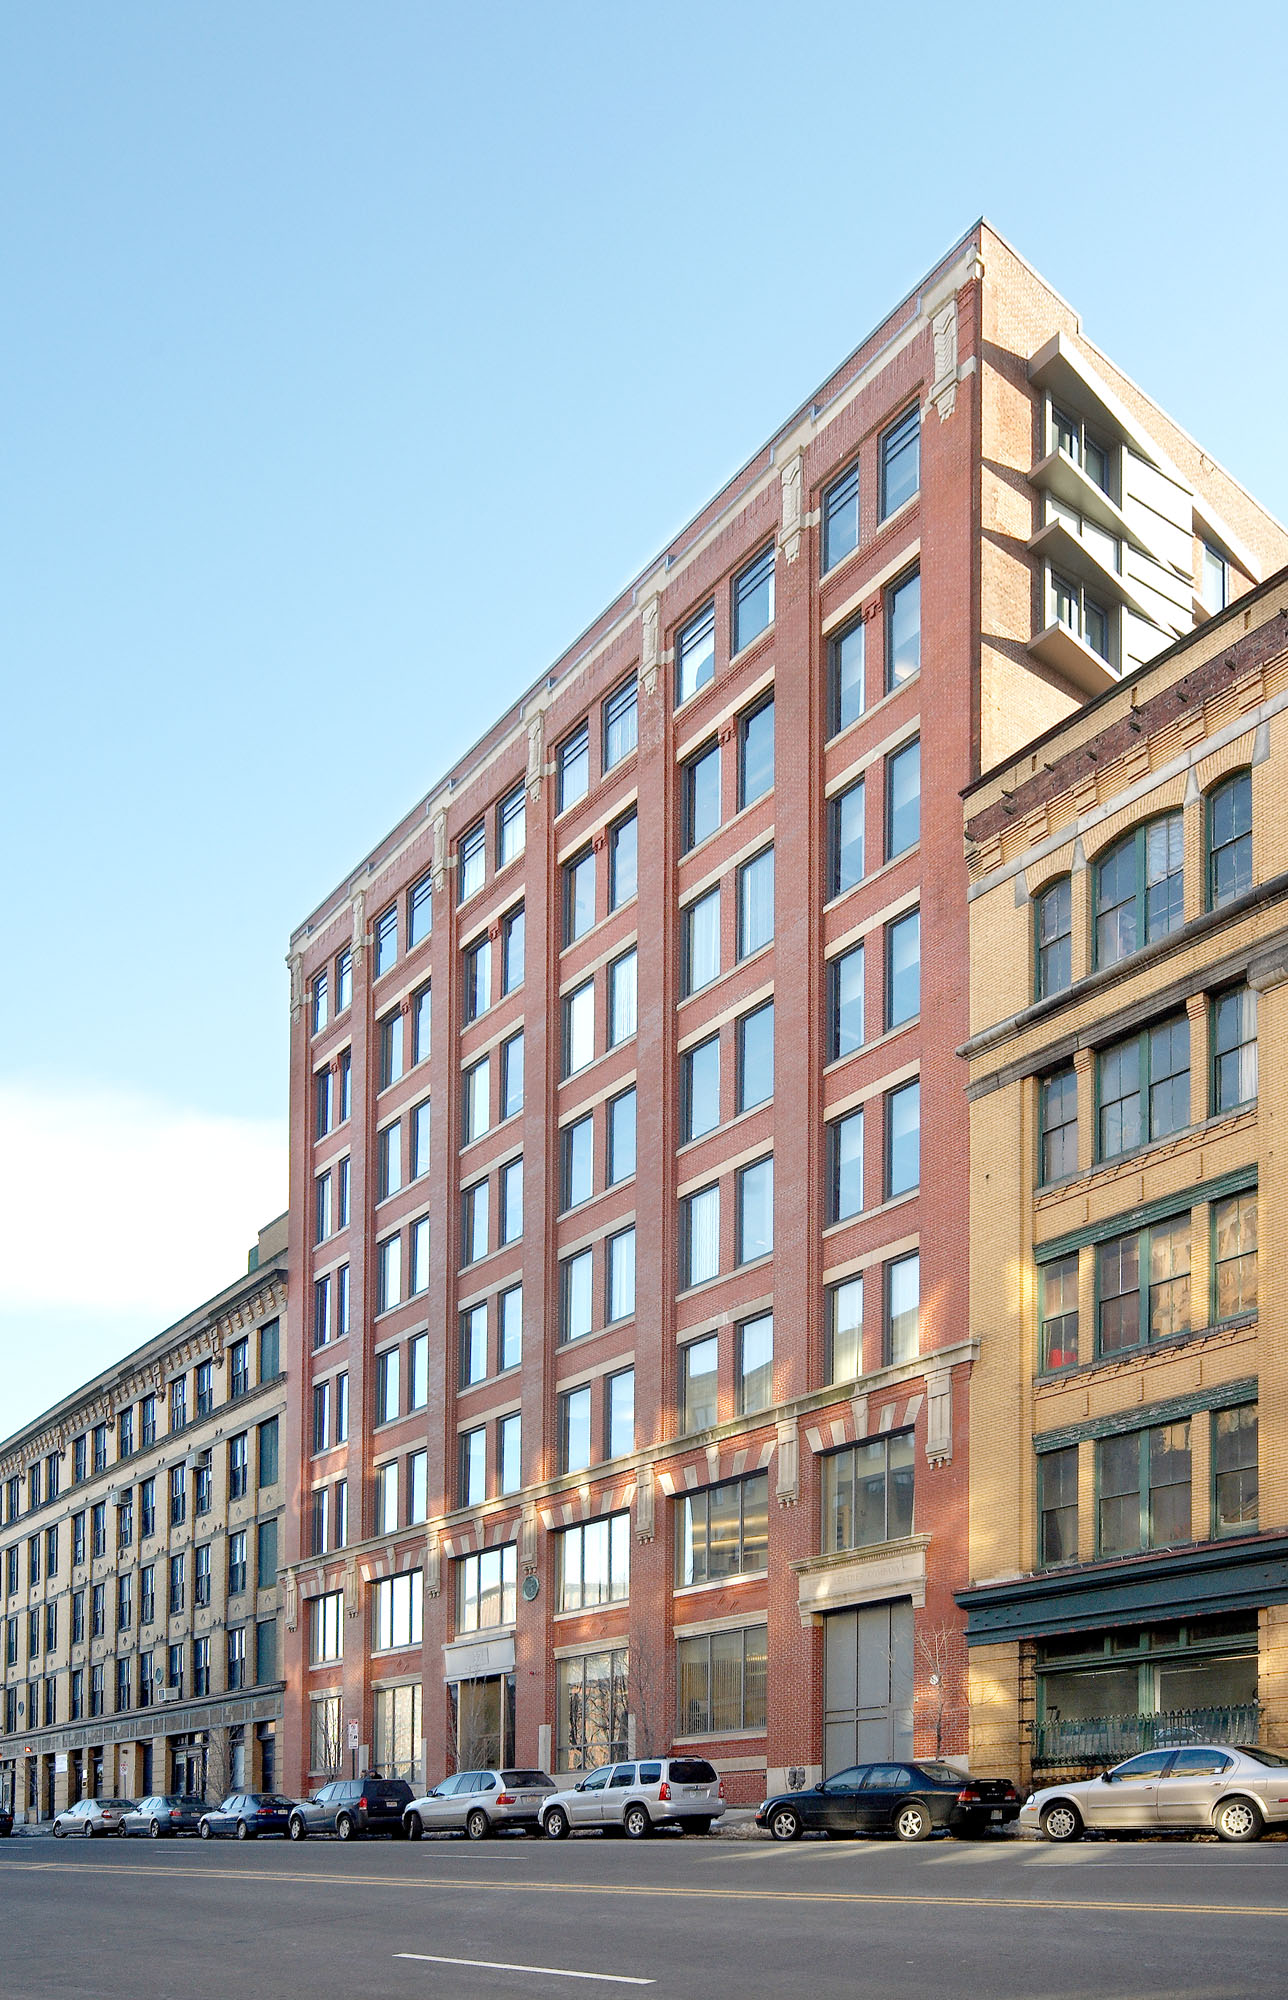 321 Summer St, Boston MA 02.jpg